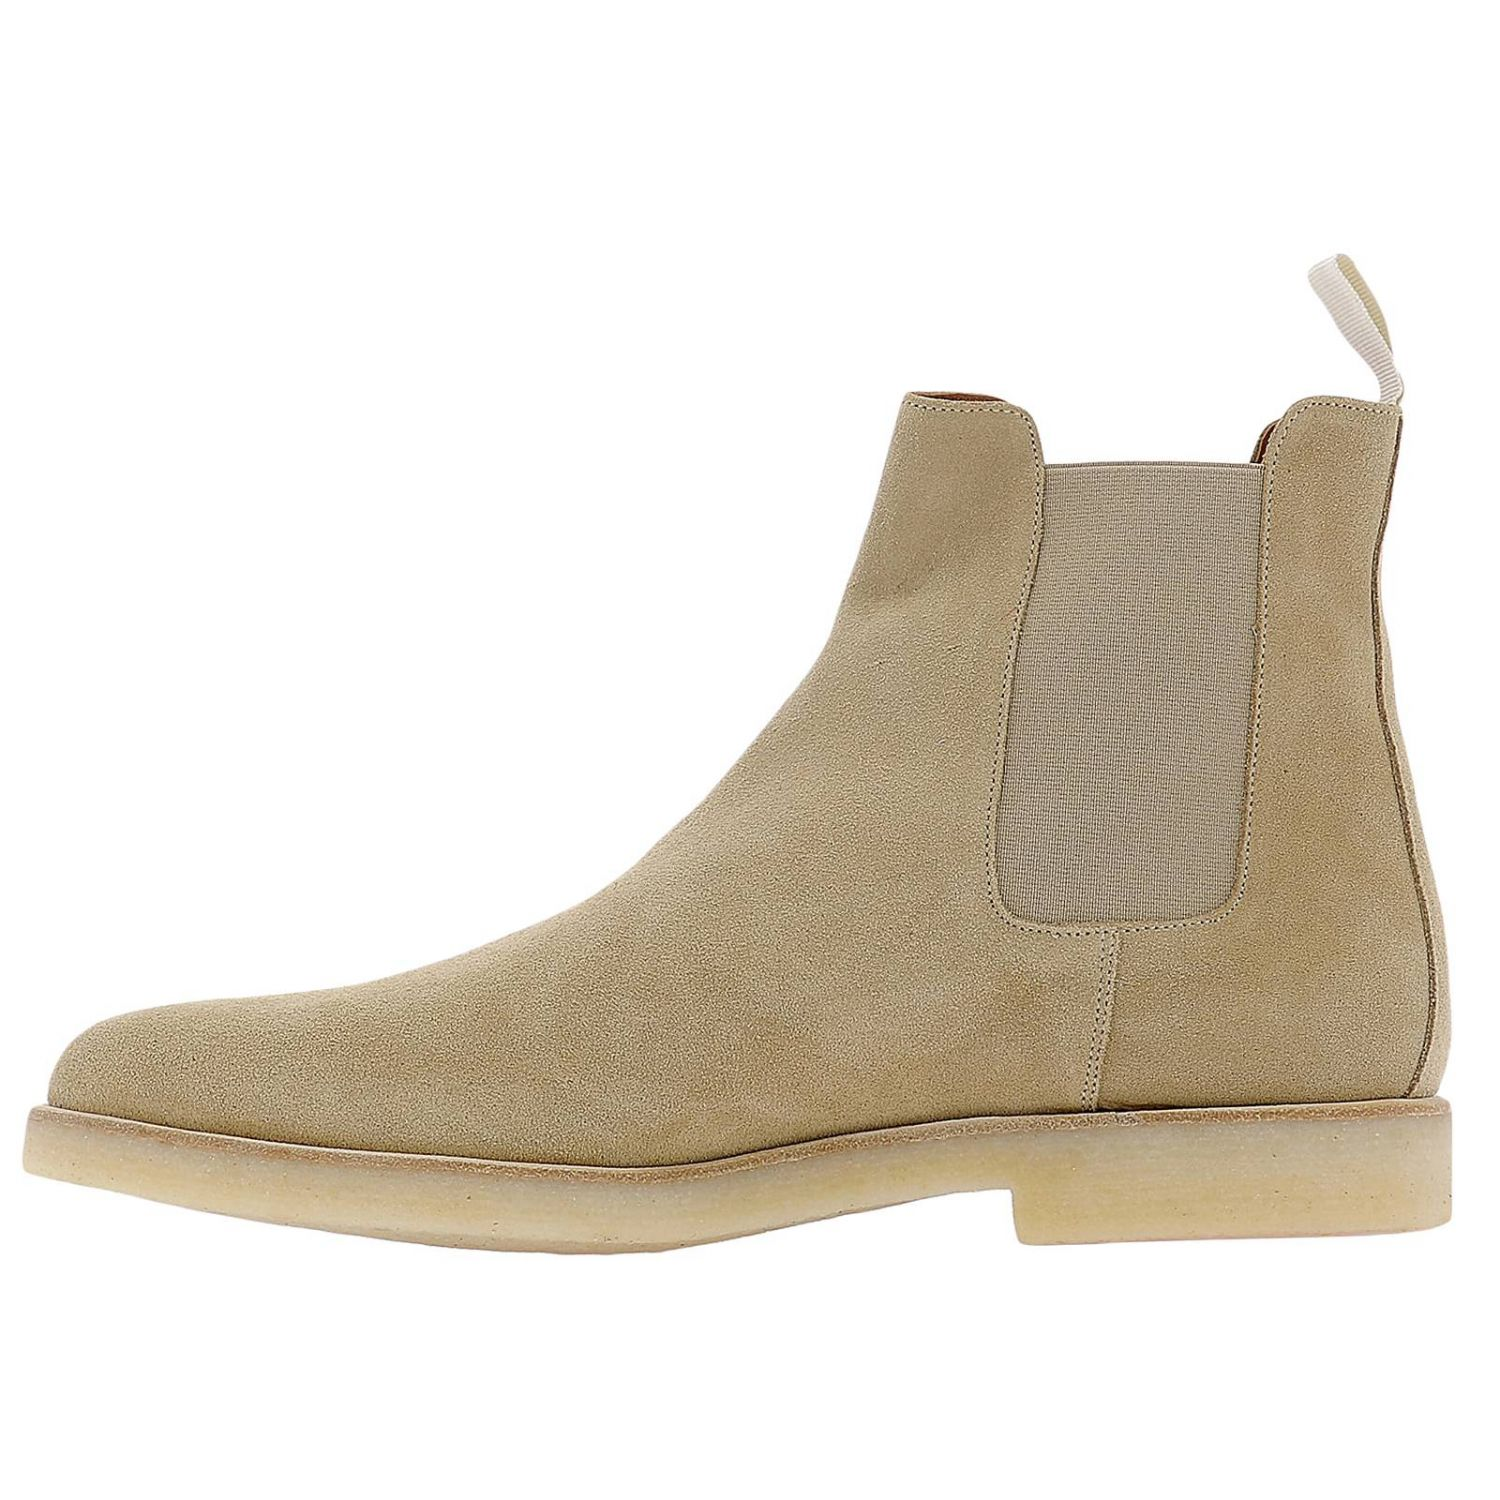 Zapatos hombre Common Projects beige 4